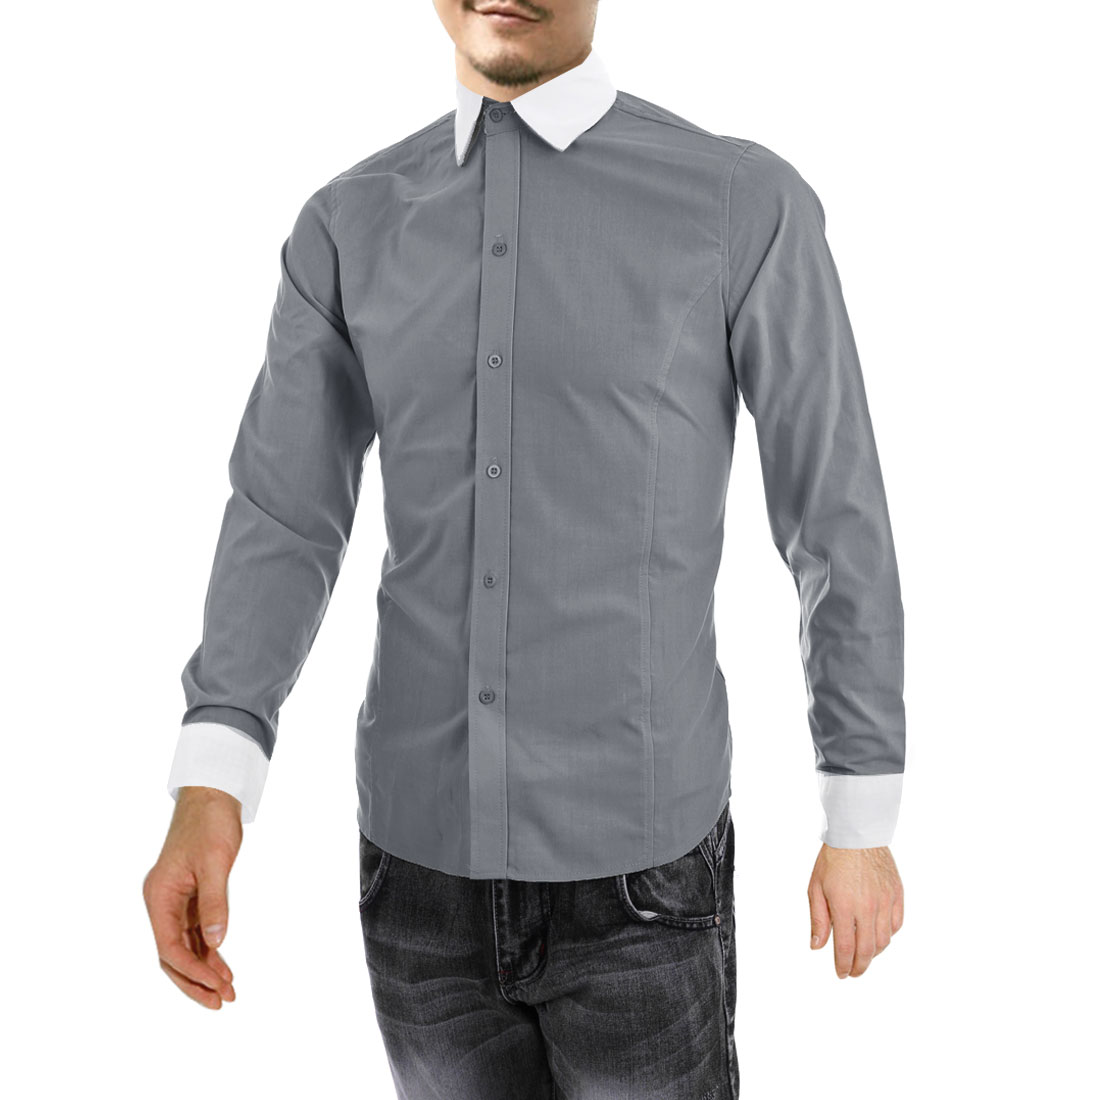 Men Long Sleeve Plaids Decor Casual Shirt Gray M